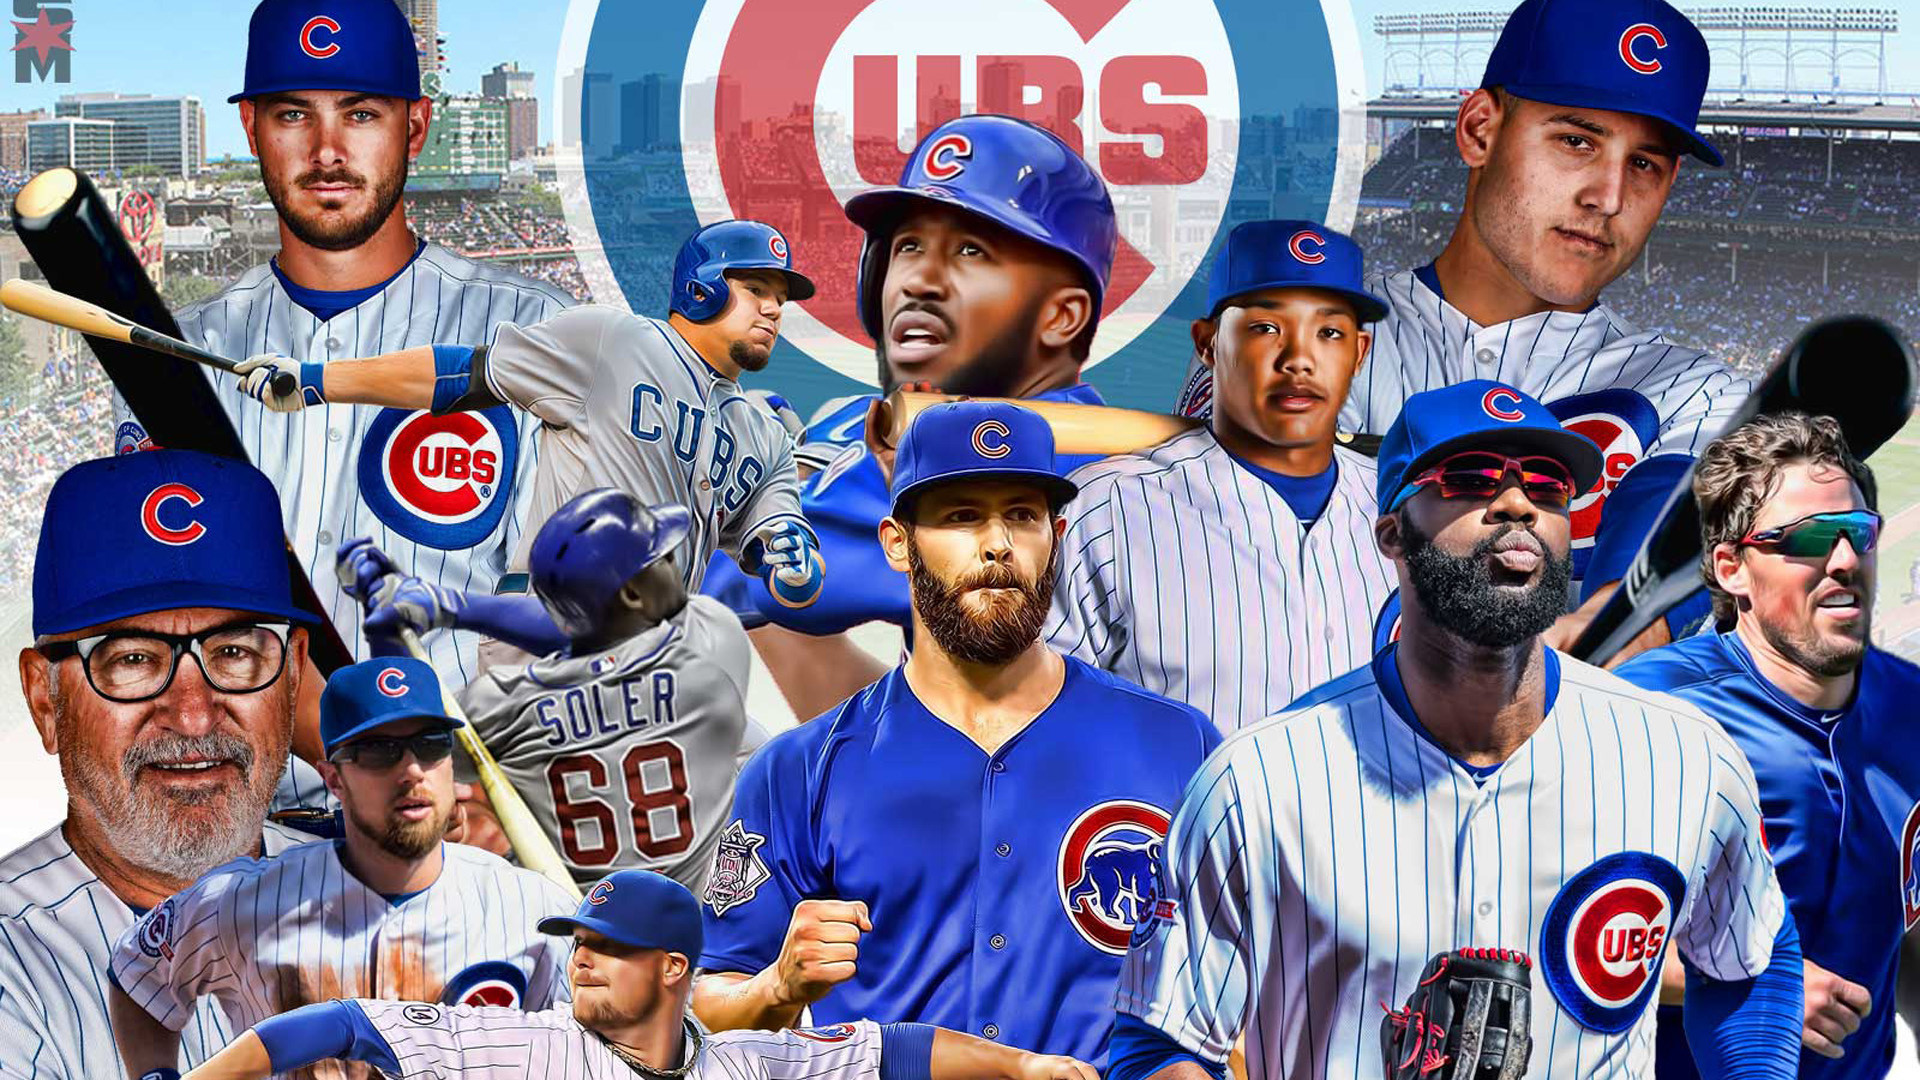 Cubs Wallpapers Design Ideas ~ Chicago Cubs Wallpapers Wallsaved .